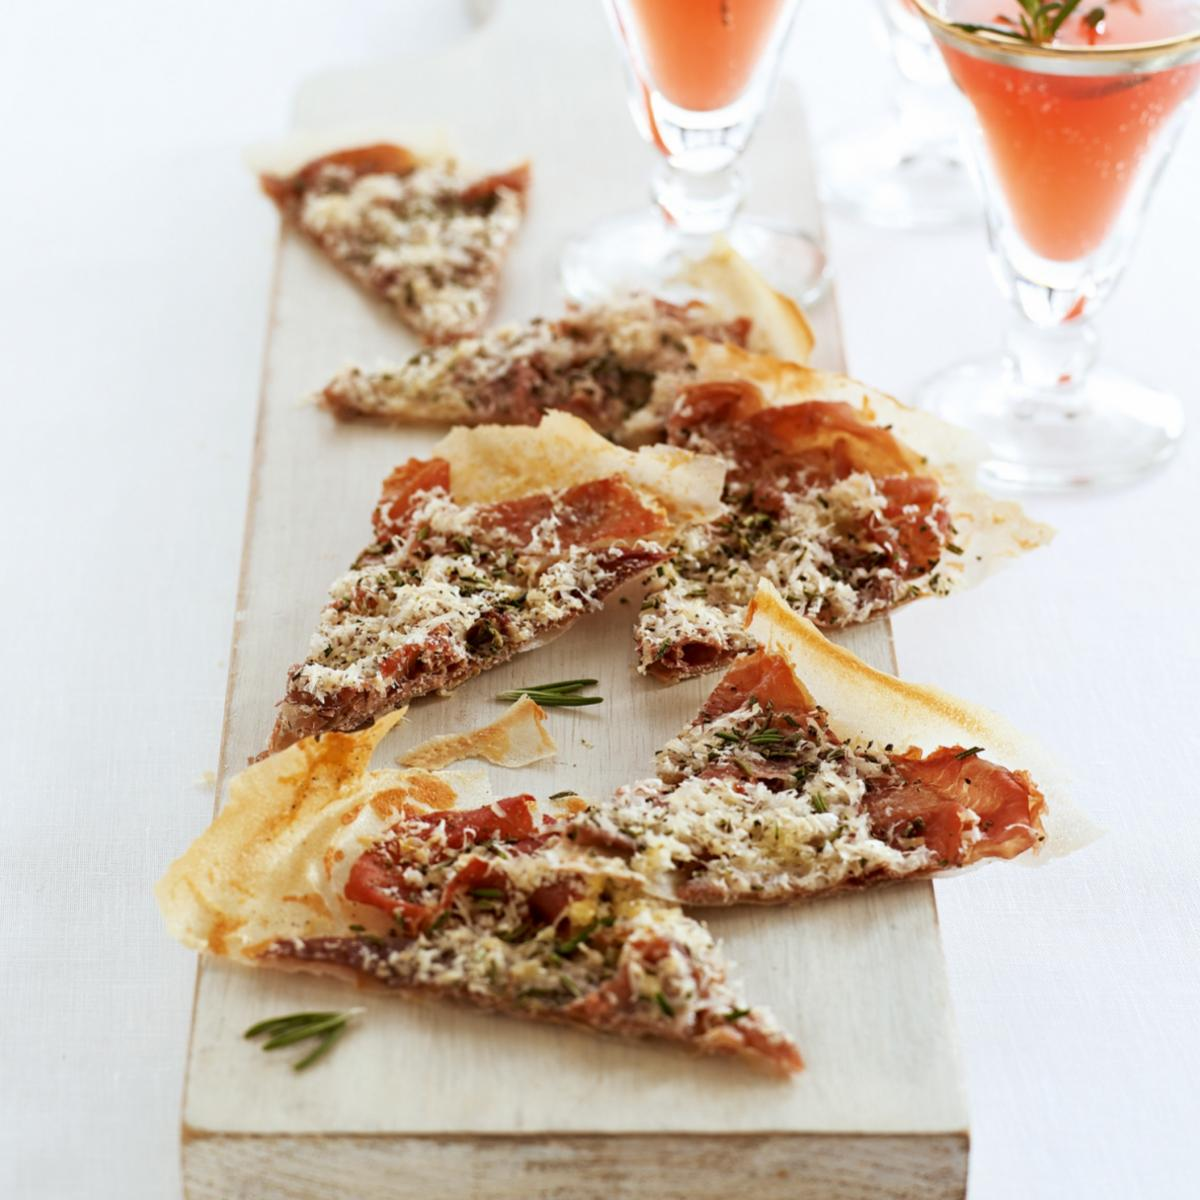 A picture of Delia's Parma Ham, Pecorino and Rosemary Crisps recipe